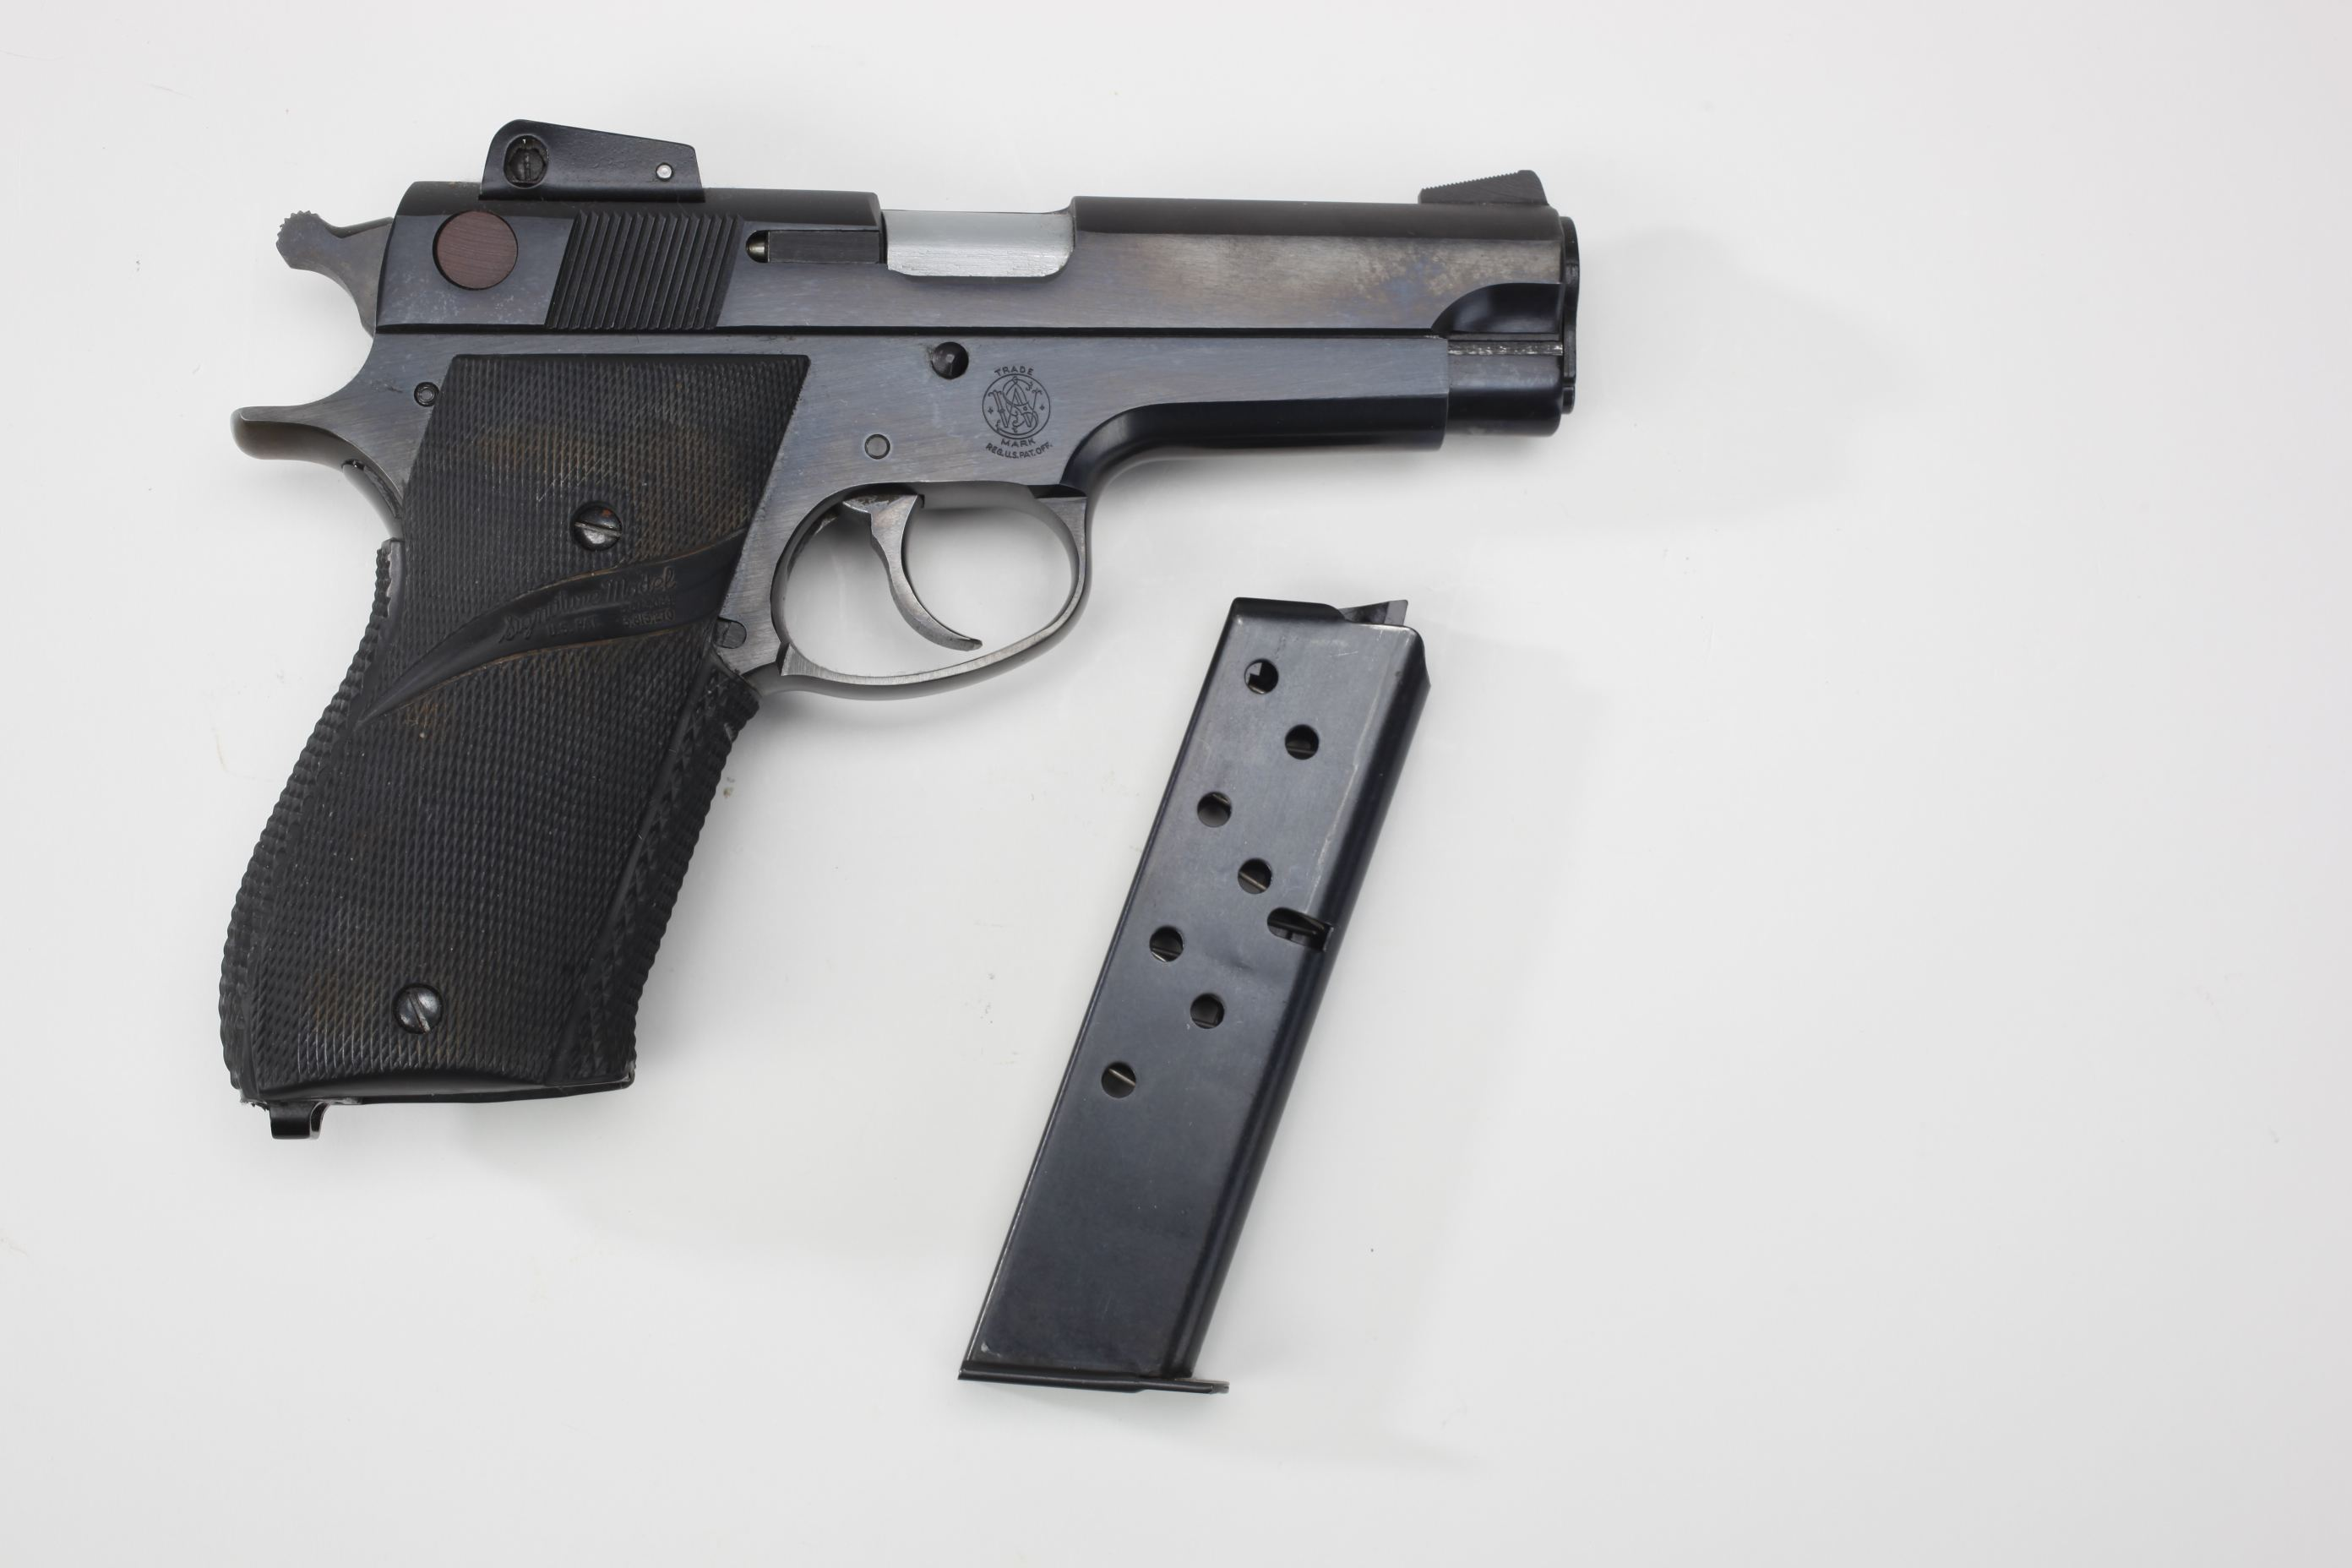 Smith & Wesson Model 539 Semi Automatic Pistol